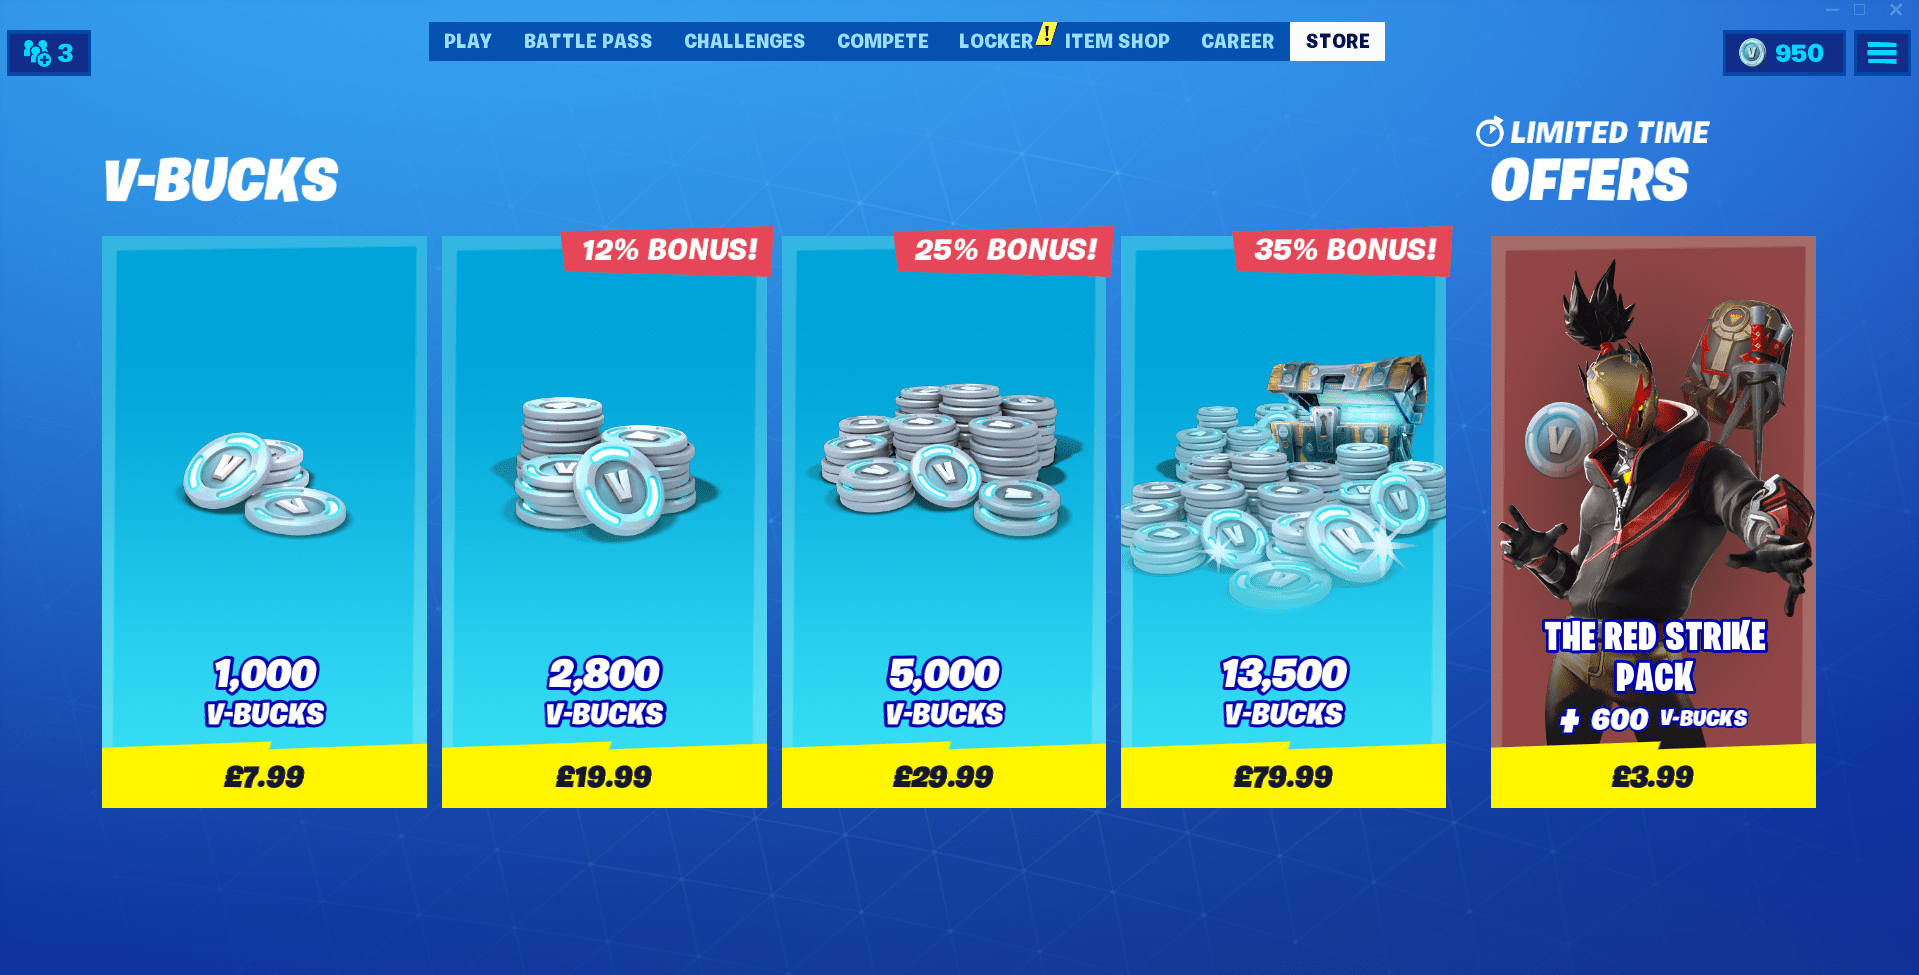 The Fortnite Red Strike Starter Pack Is Now Available Price Cosmetics The Fortnite Red Strike Starter Pack Is Now Available Fortnite Starter Pack Game Item